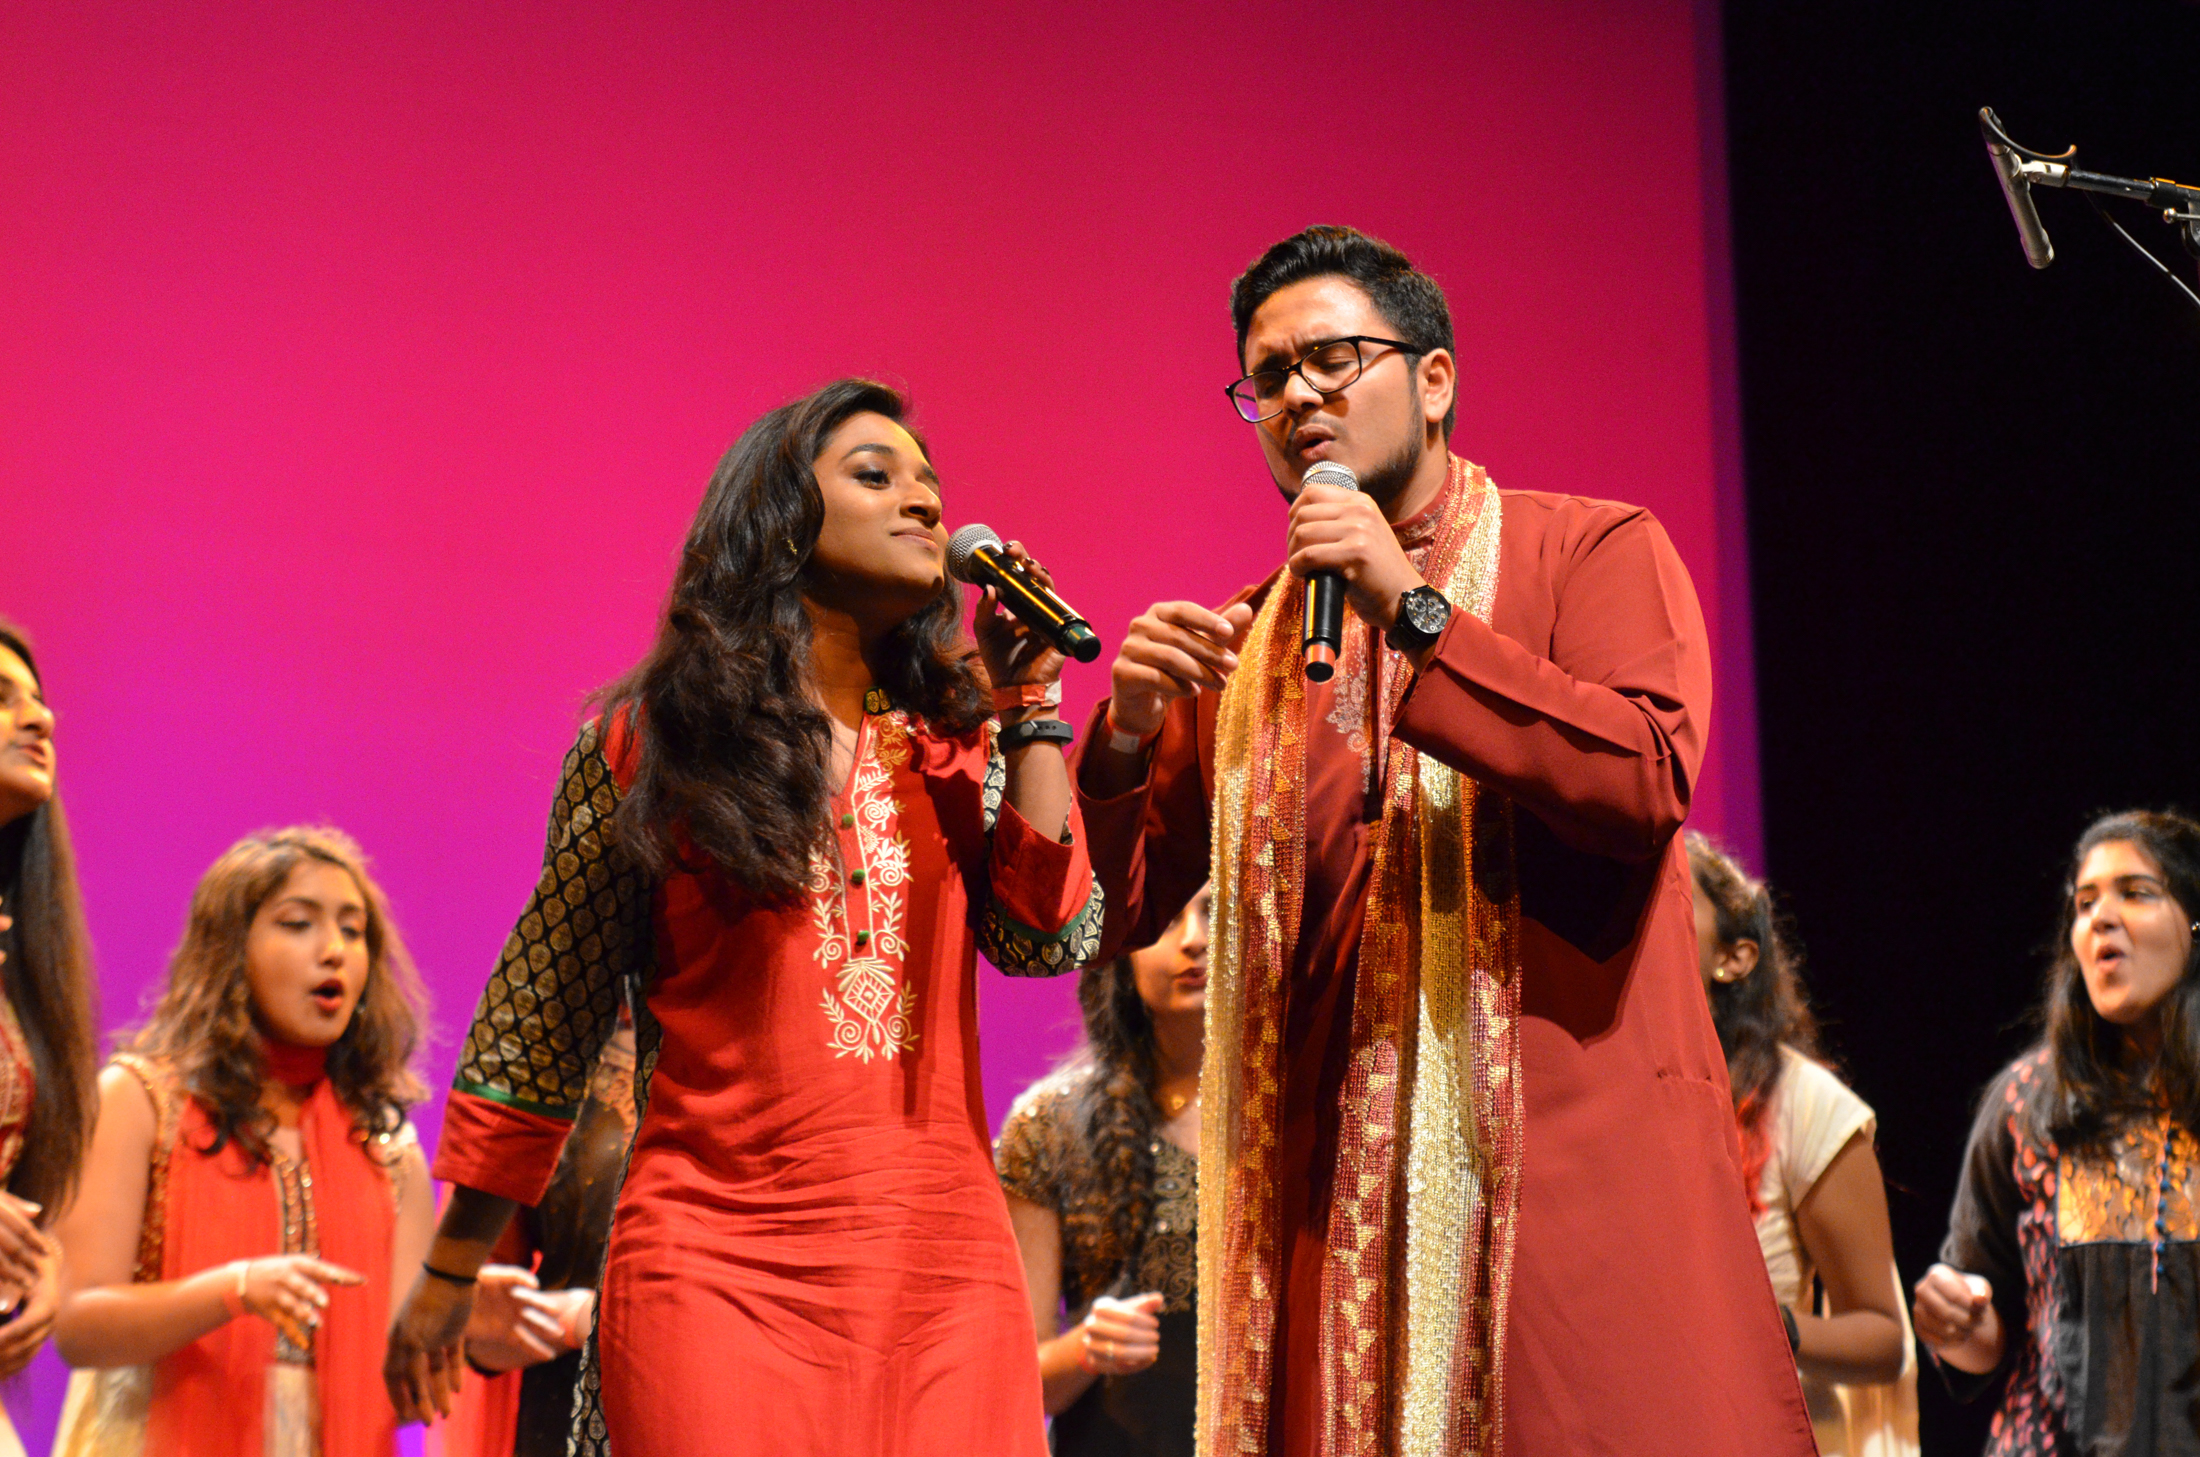 Husky Hungama participates in Asian Nite 2017 on Saturday evening at the Jorgensen Center for the Performing Arts. (Akshara Thejaswi/The Daily Campus)